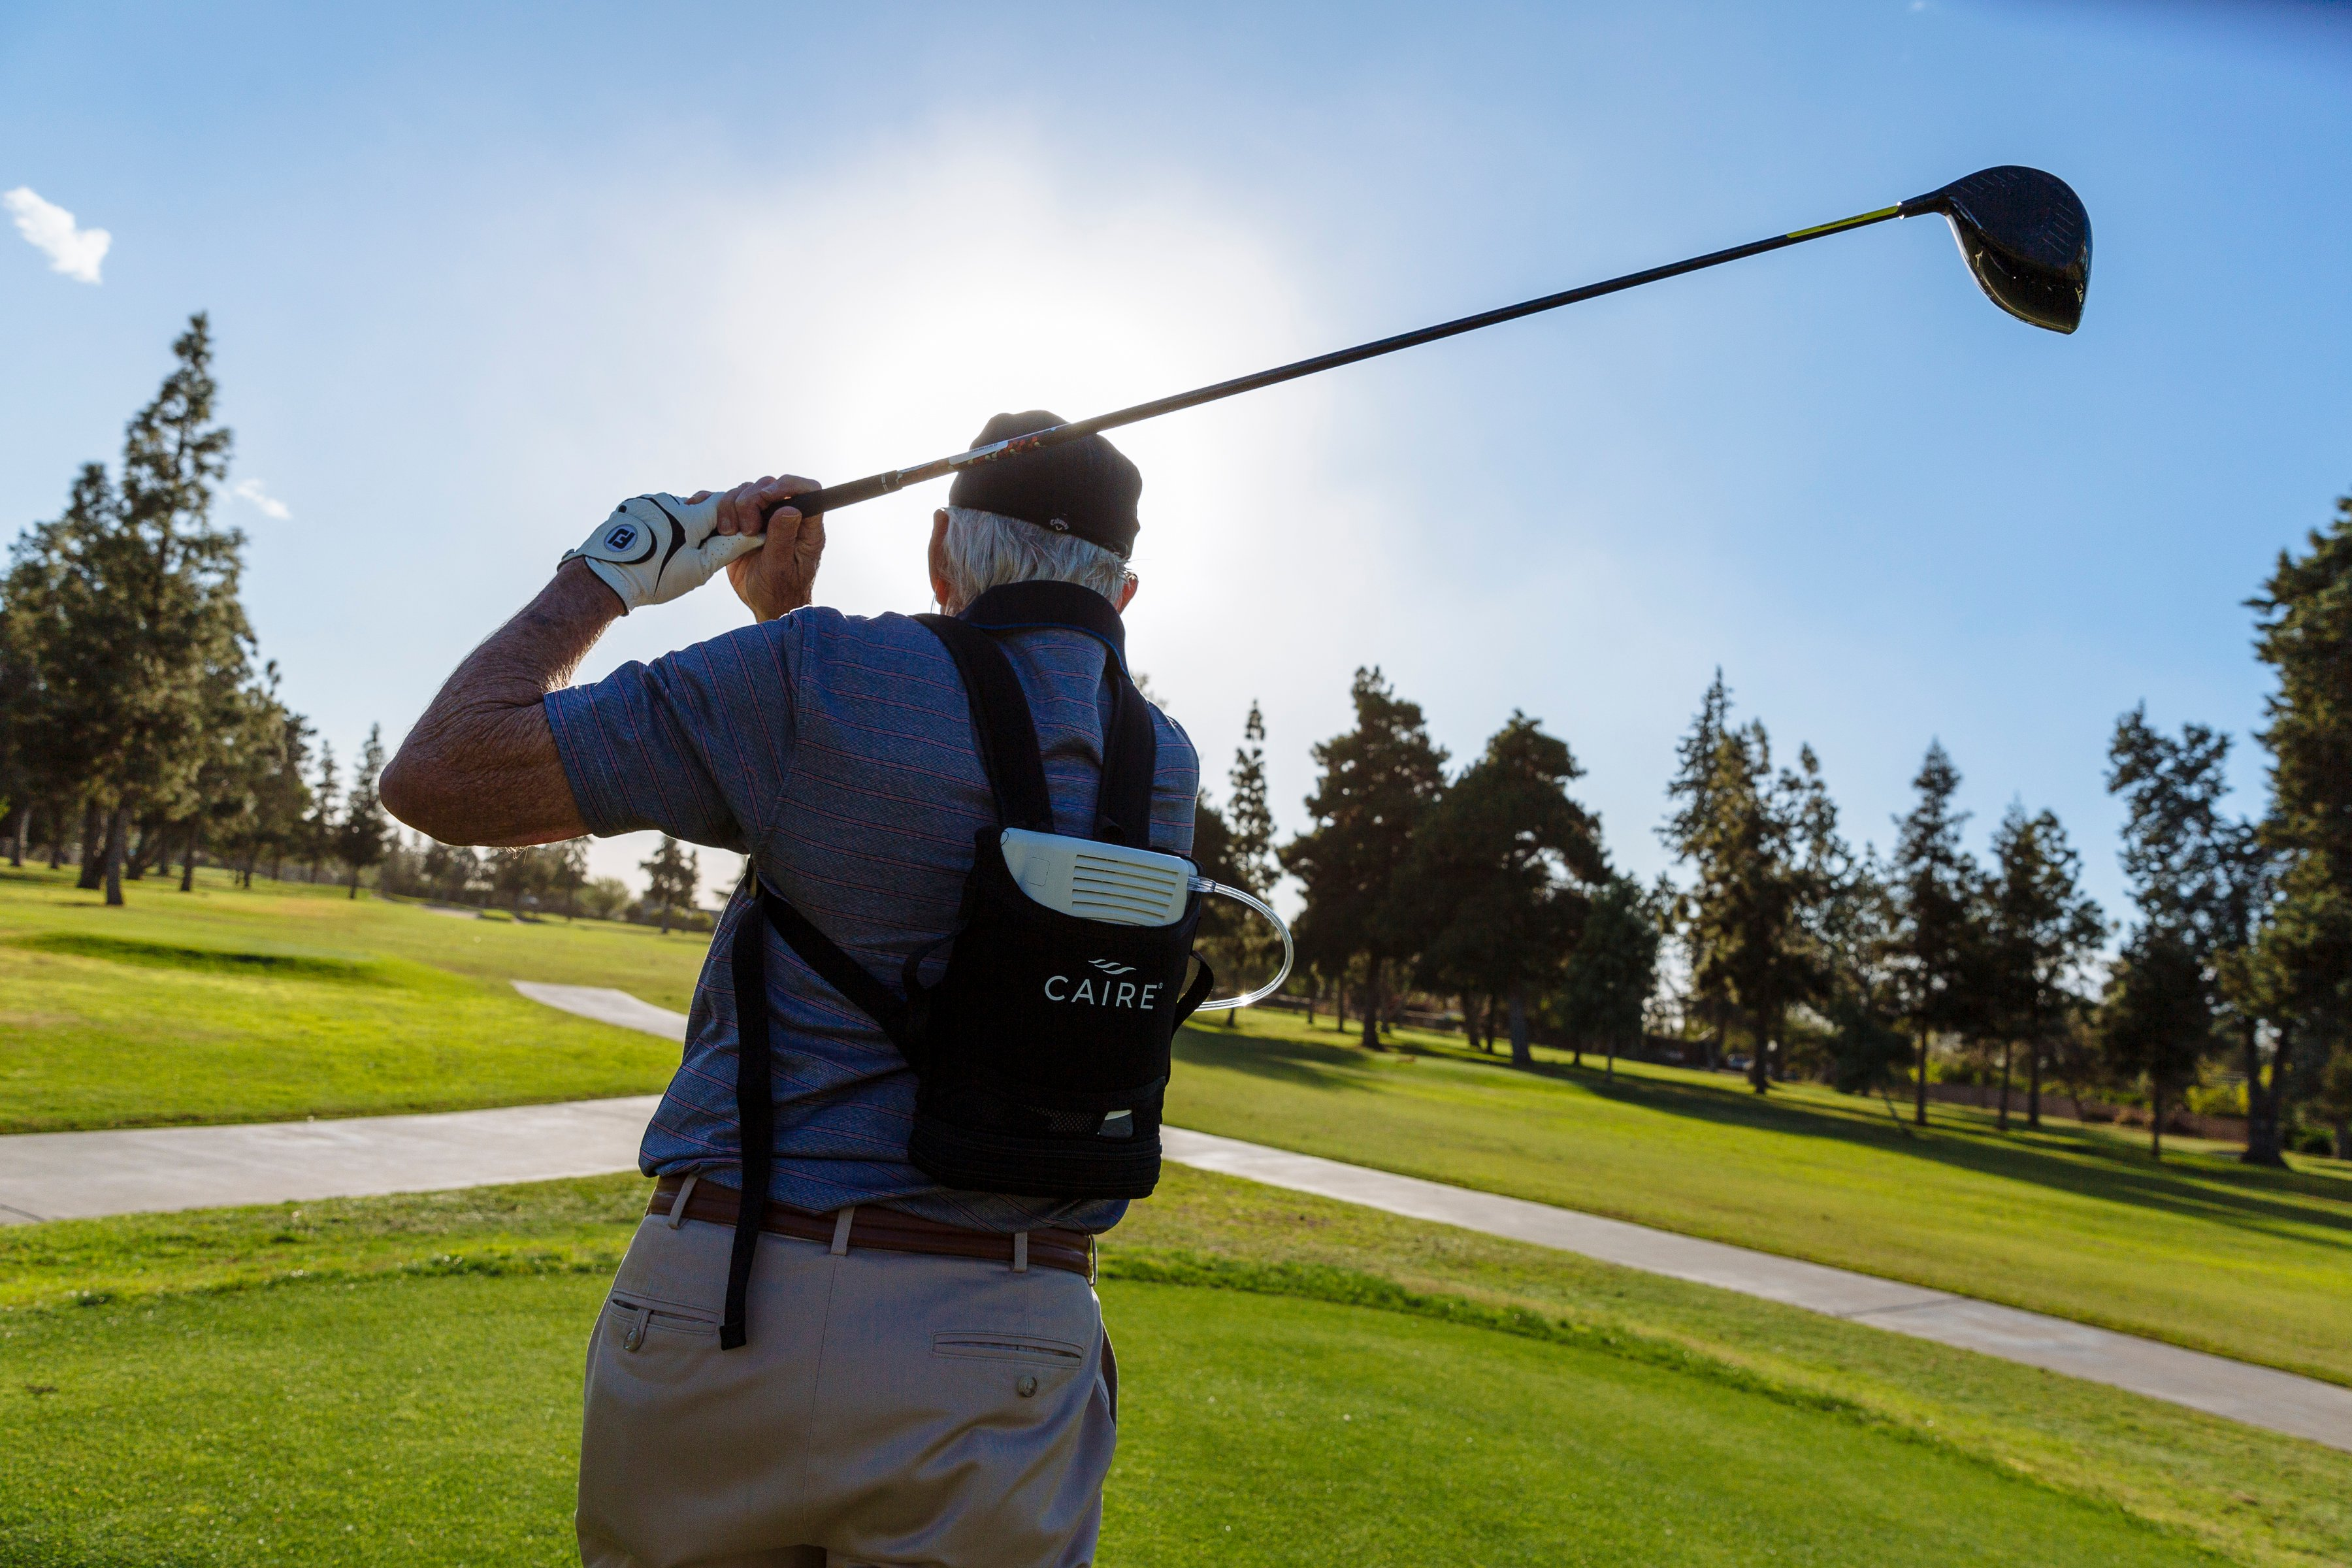 Golfing with the Caire Freestyle Comfort Portable Oxygen Concentrator